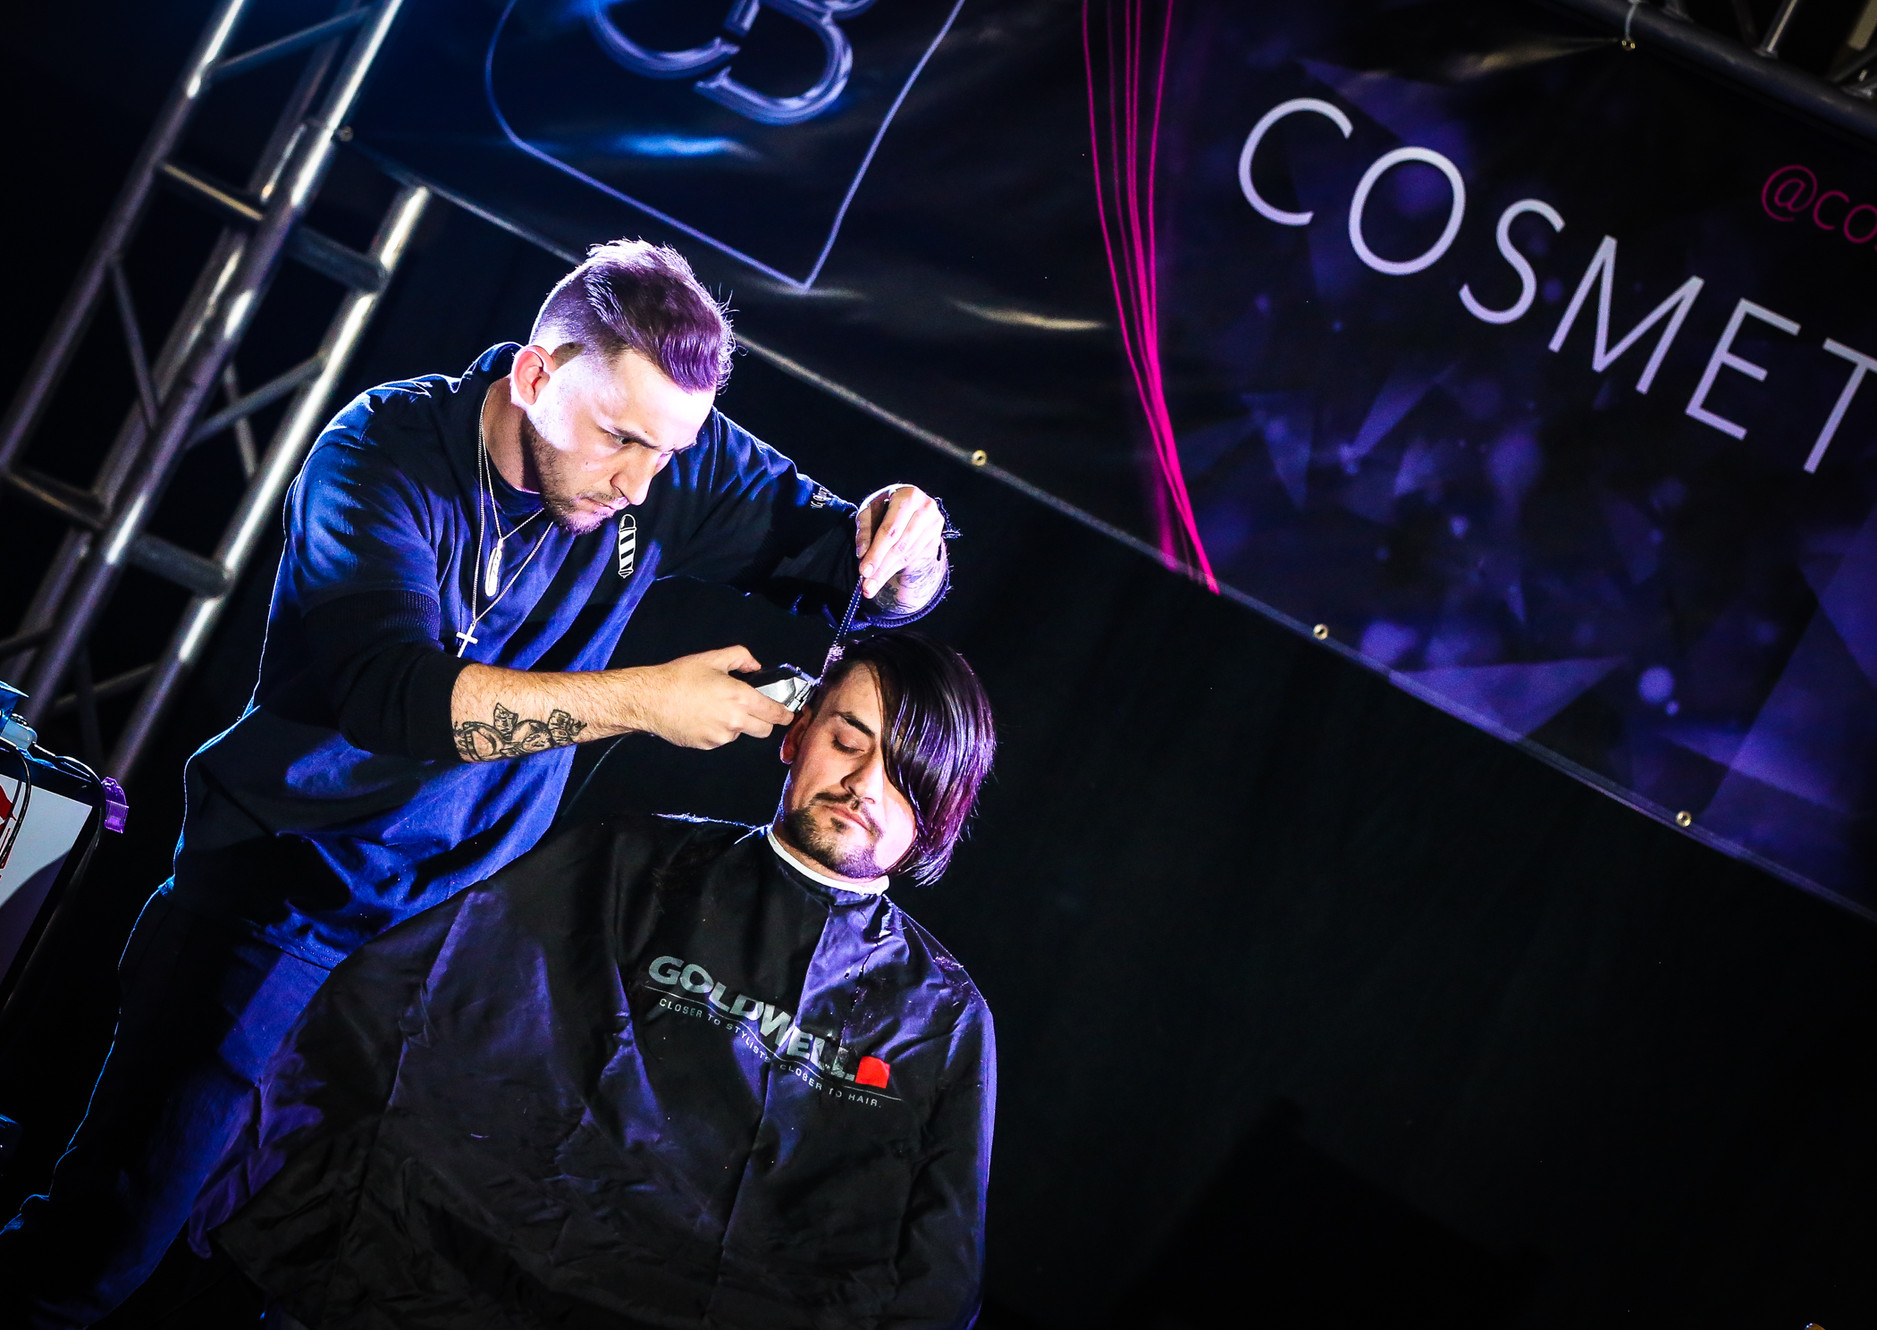 Cosmo Barber Expo